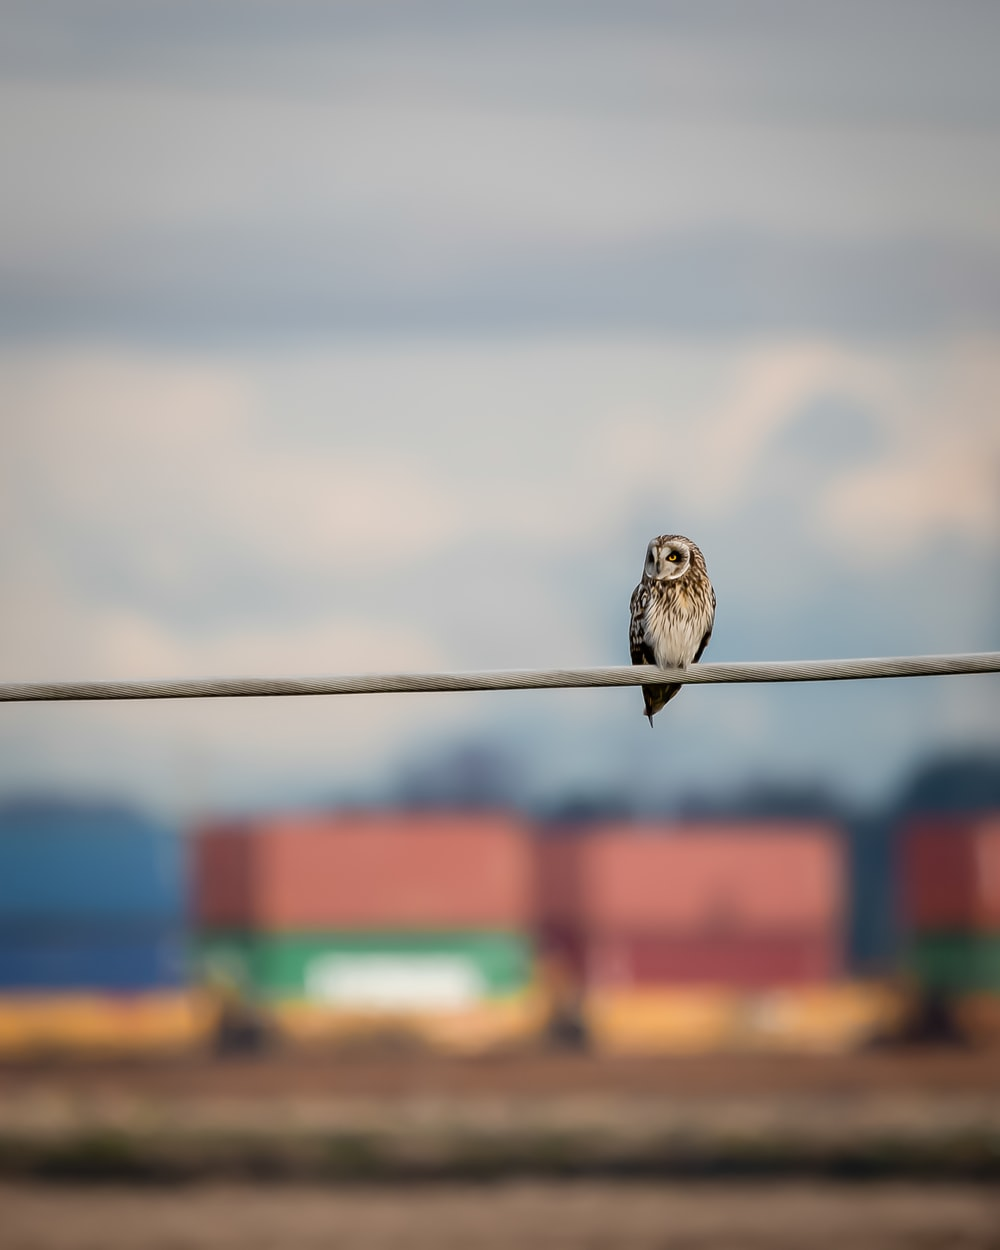 brown and white bird on black wire during daytime